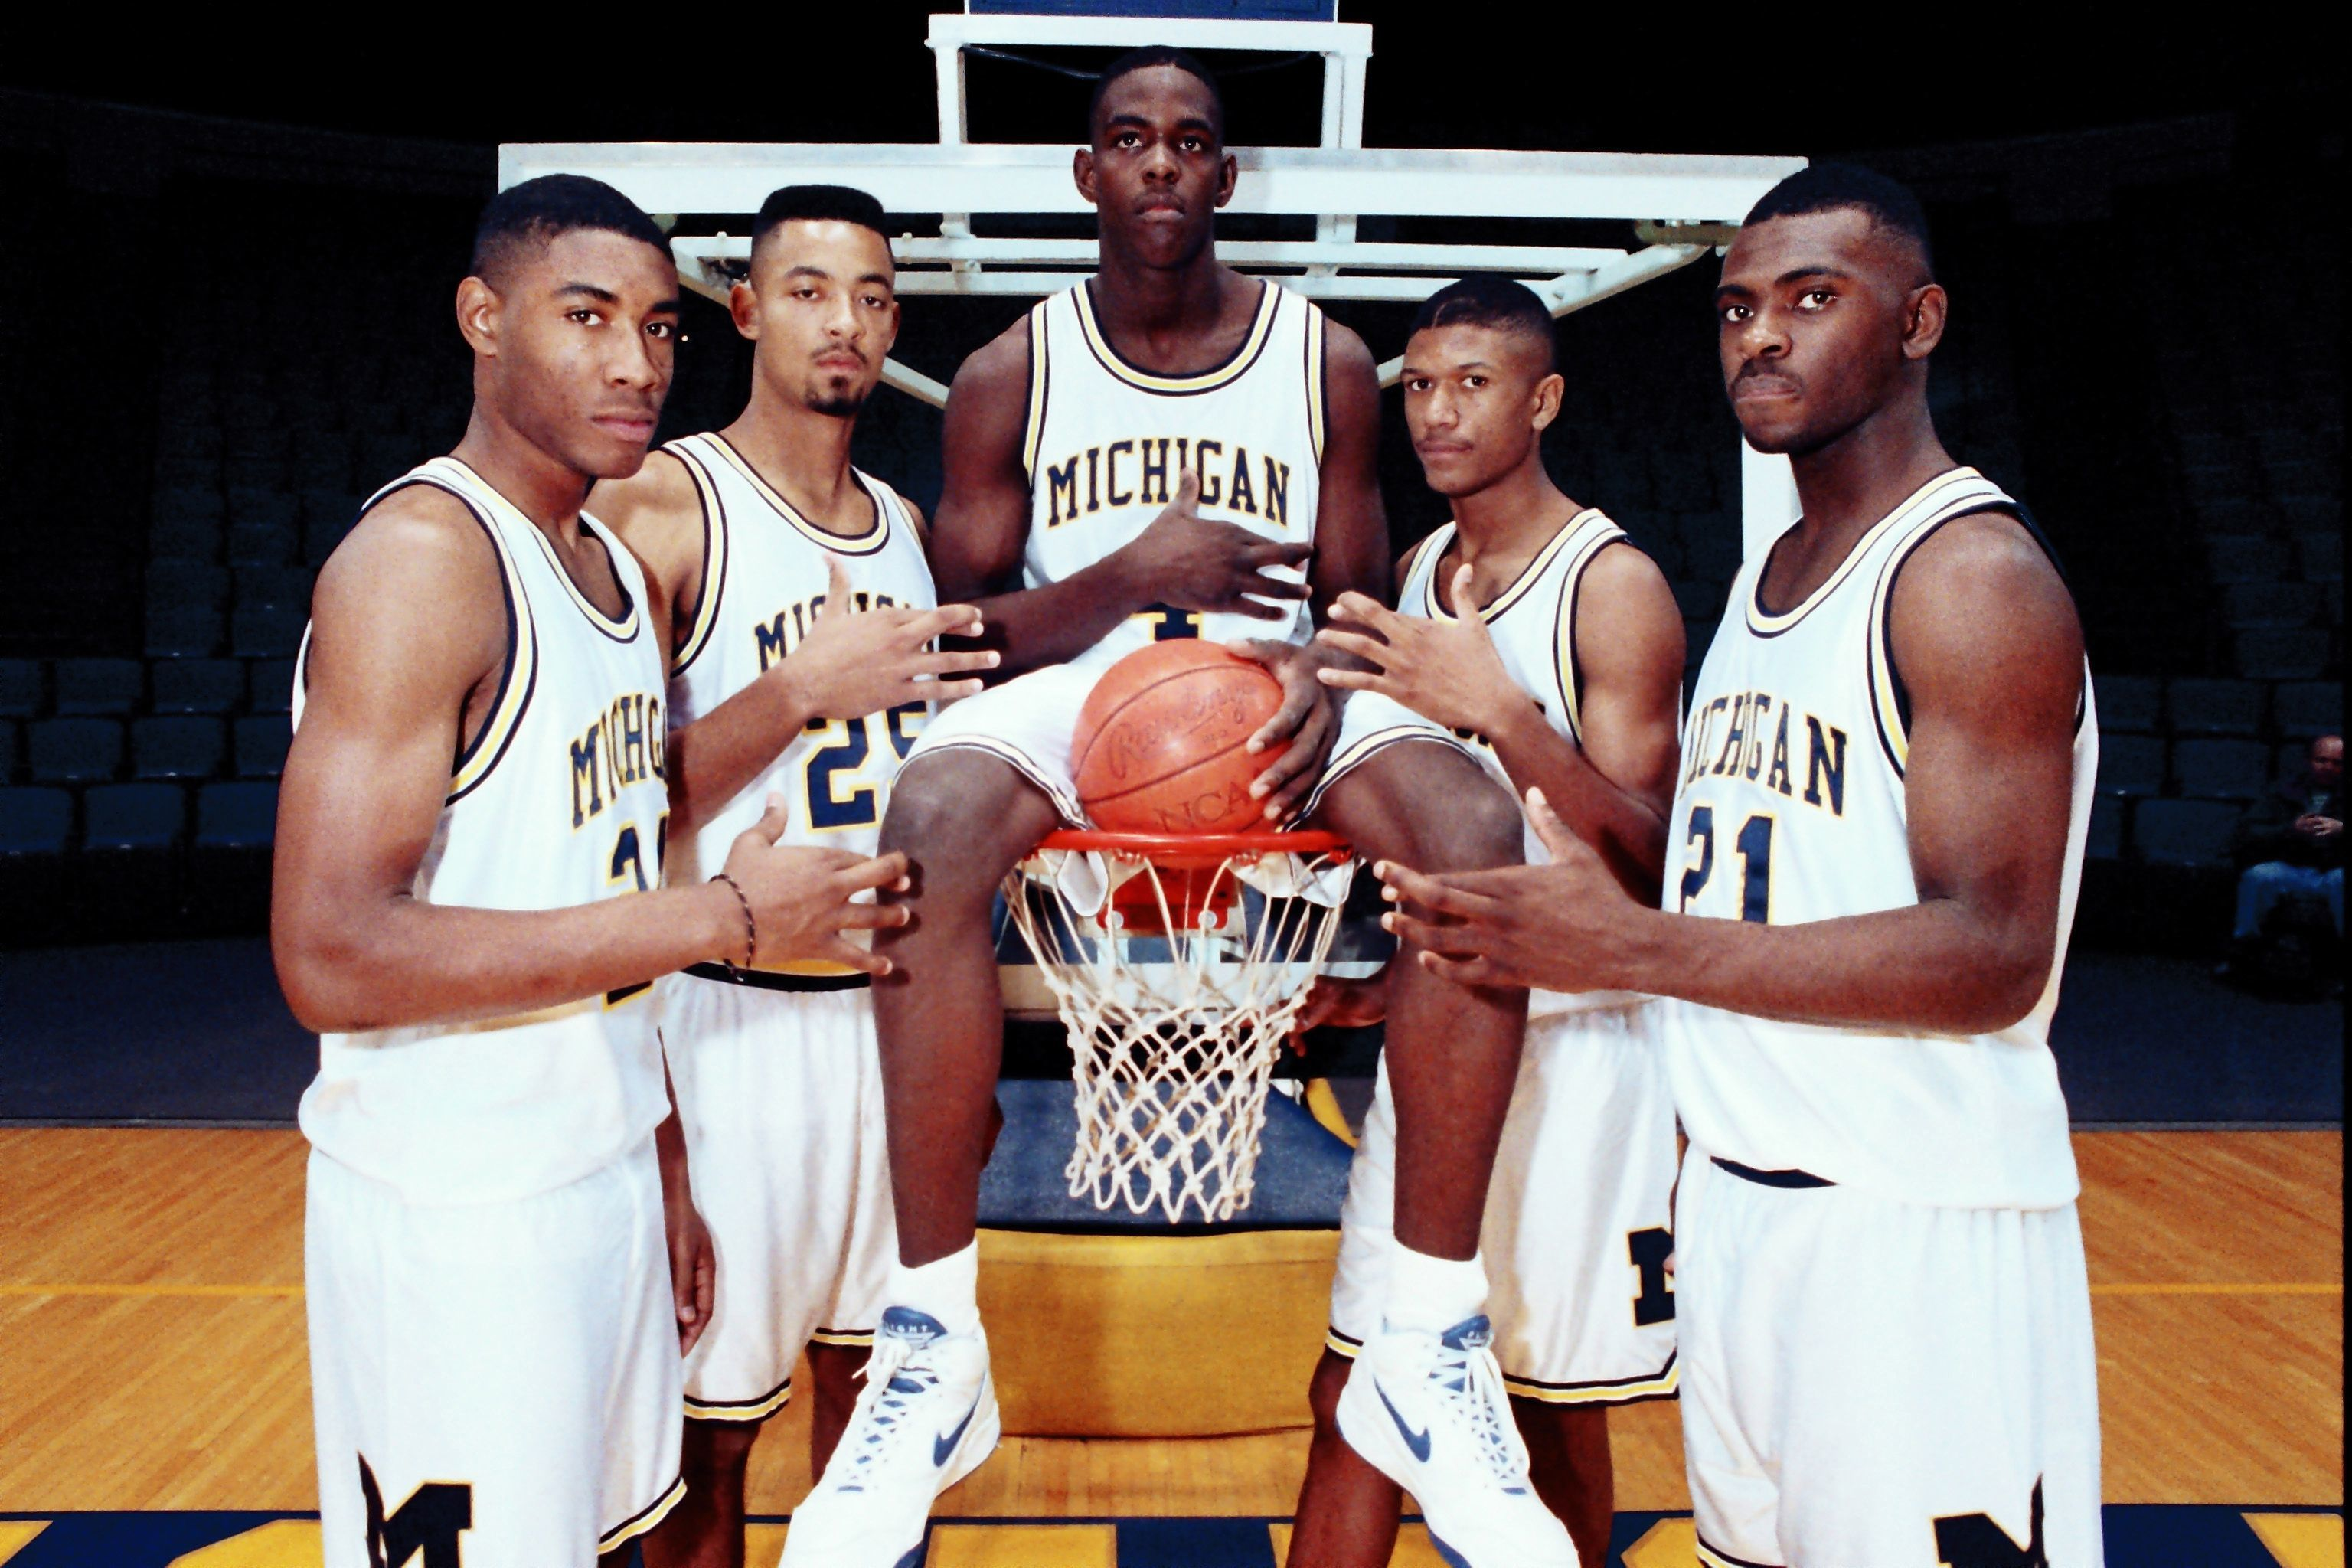 Michigan's Fab Five: From left, Jimmy King, Juwan Howard, Chris Webber, Jalen Rose and Ray Jackson pose in Ann Arbor in November of 1991.